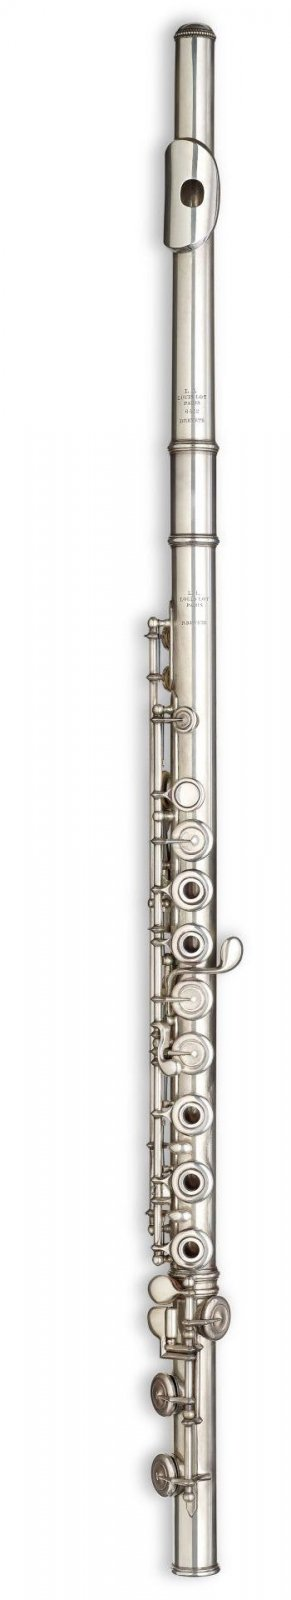 RENT TO OWN BAND FLUTE OUTFIT